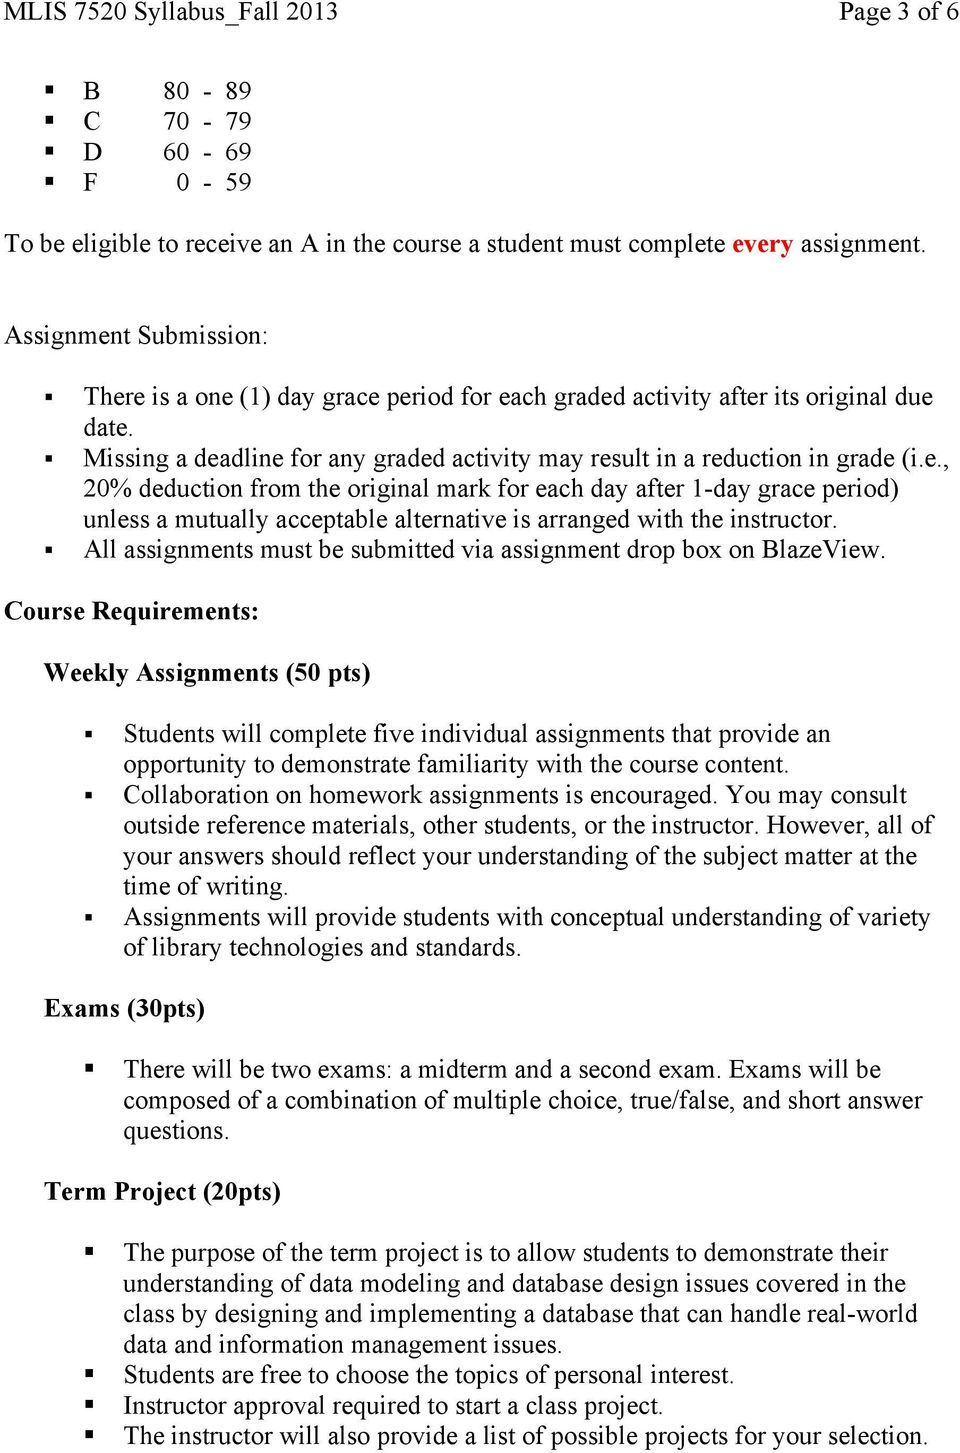 All assignments must be submitted via assignment drop box on BlazeView.